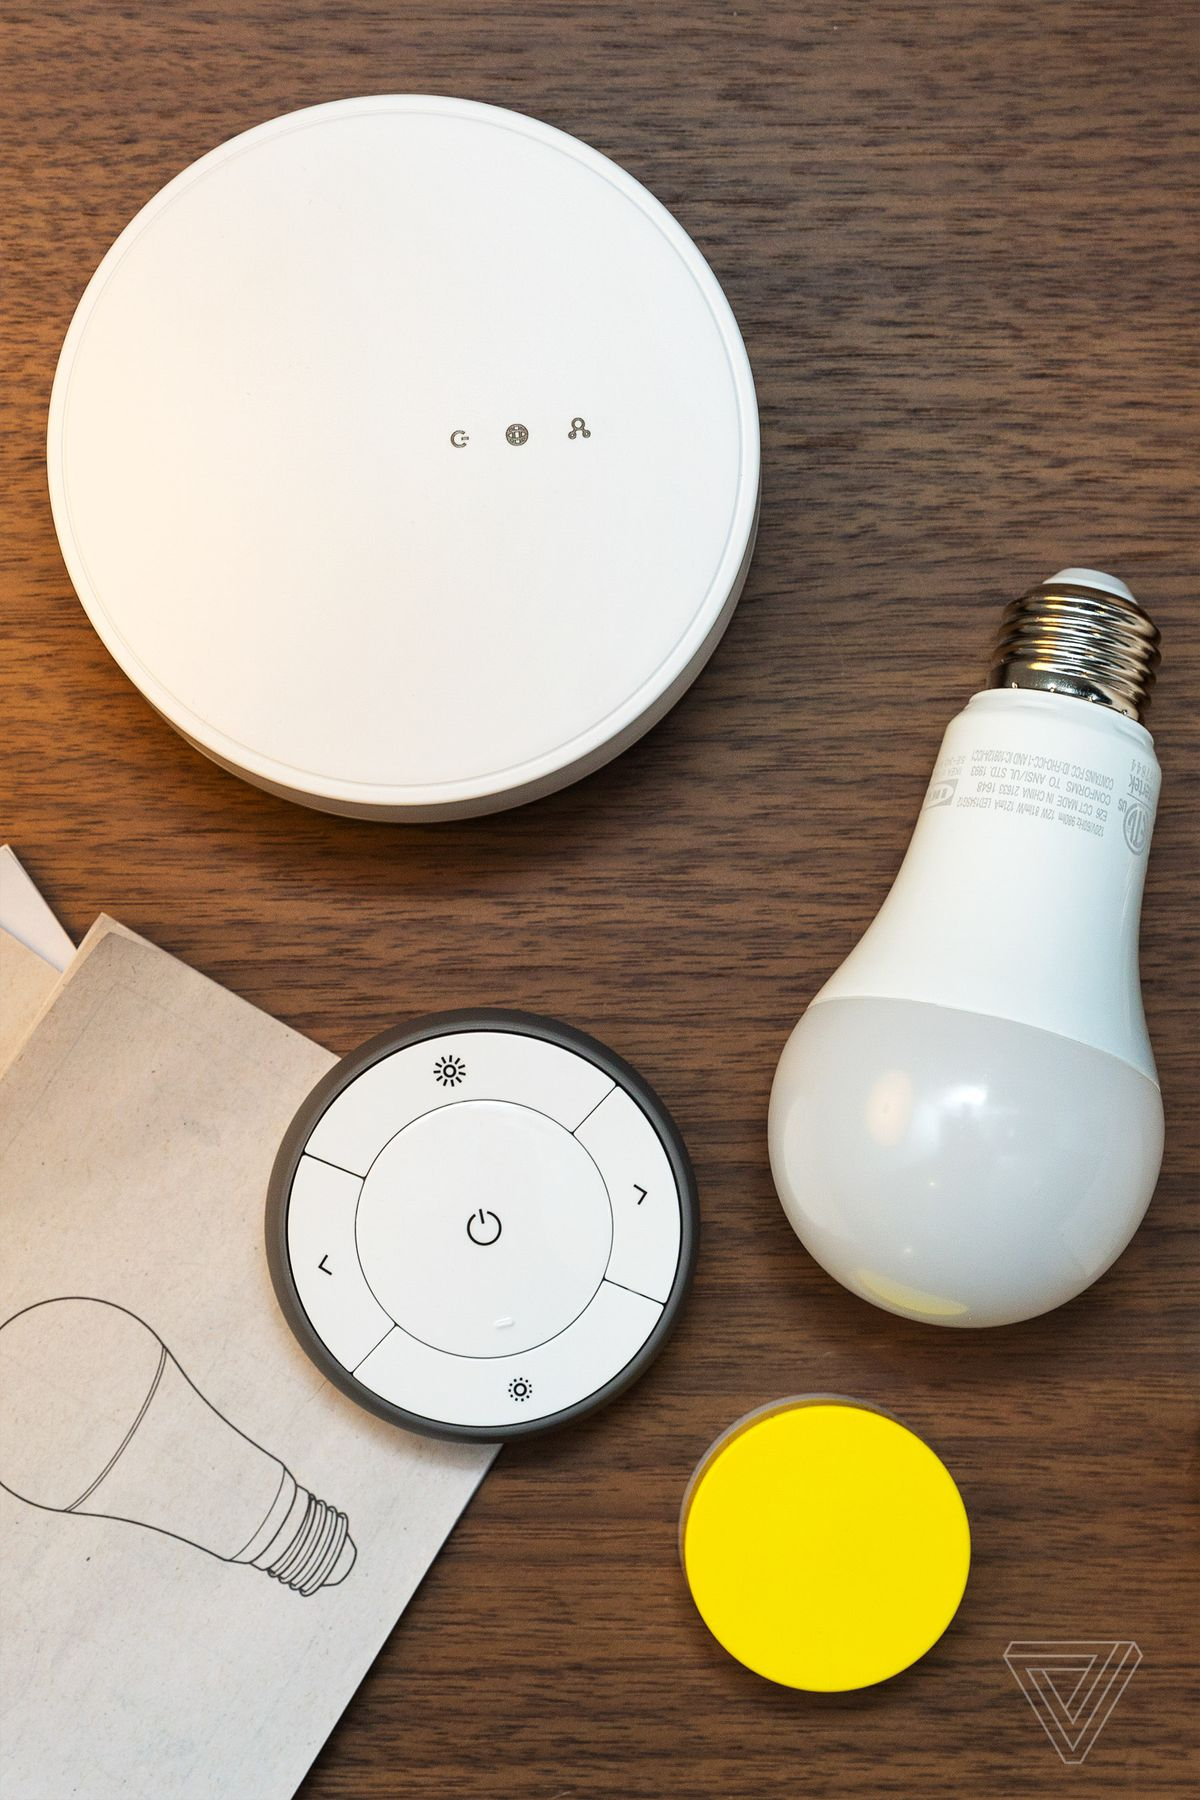 Ikeas Smart Lights Are As Stylish And Breakable Its Furniture How To Wire Two Controlled From One Switch Photo By Amelia Holowaty Krales The Verge